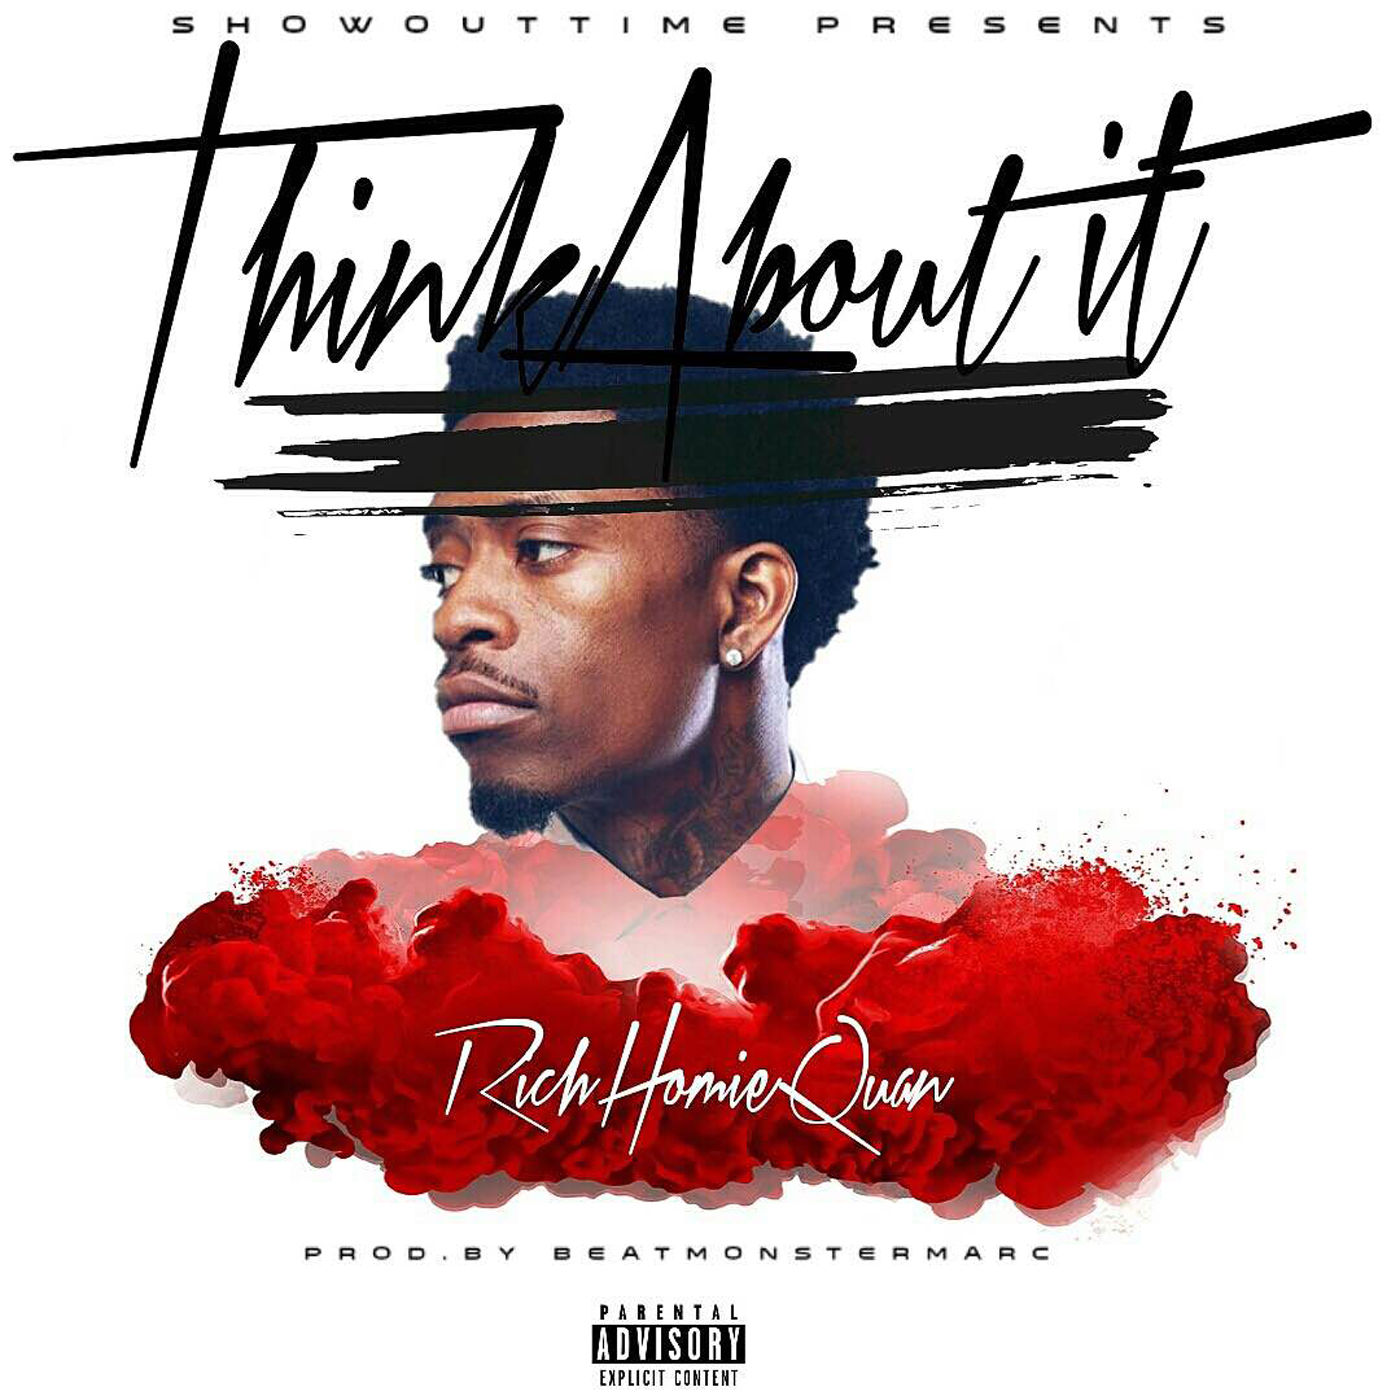 Rich Homie Quan - Think About It - Single Cover